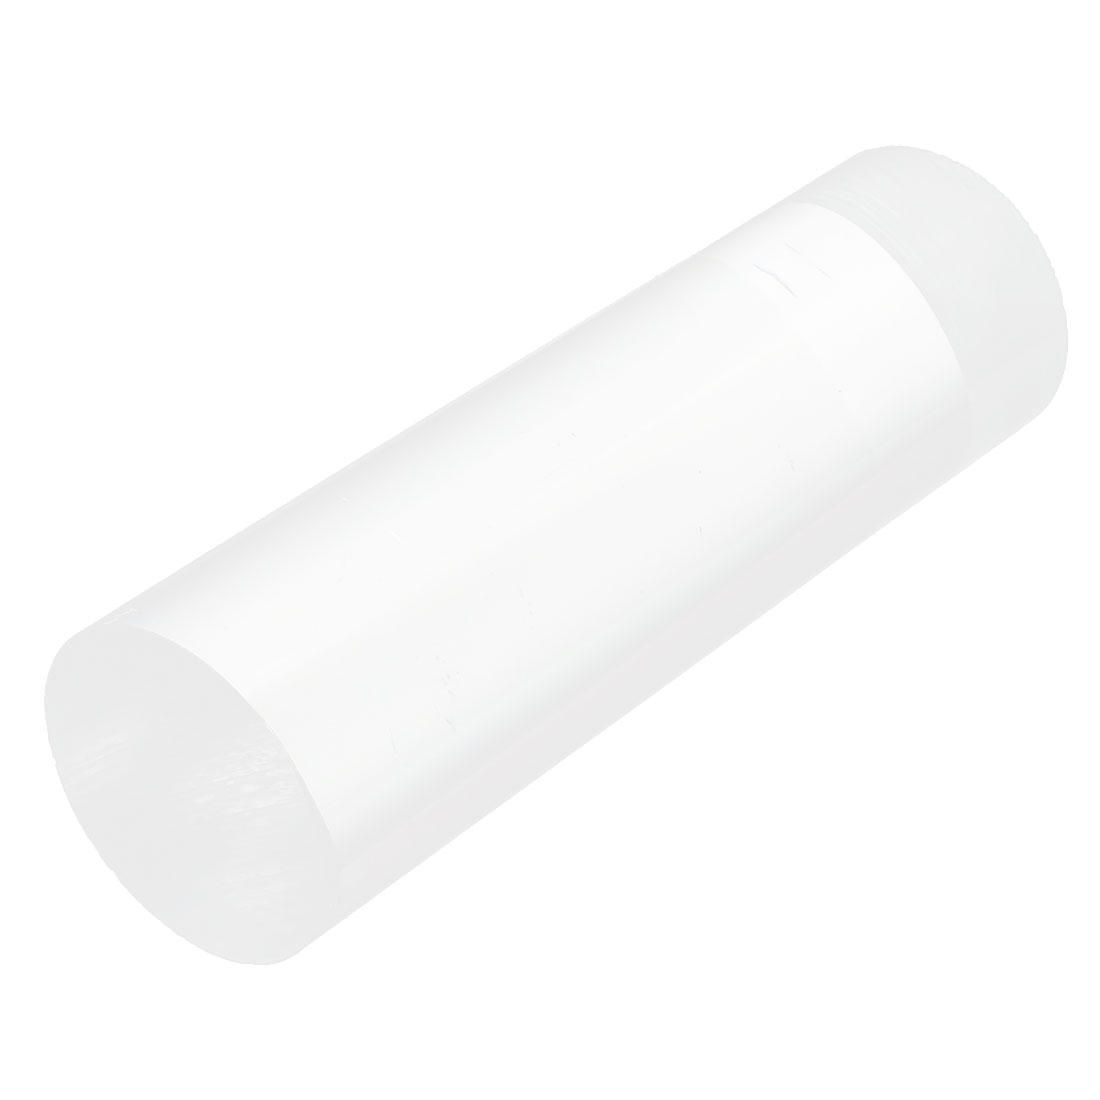 "Clear Acrylic Round Rod PMMA Circular Bar 6"" Long 45mm Diameter"